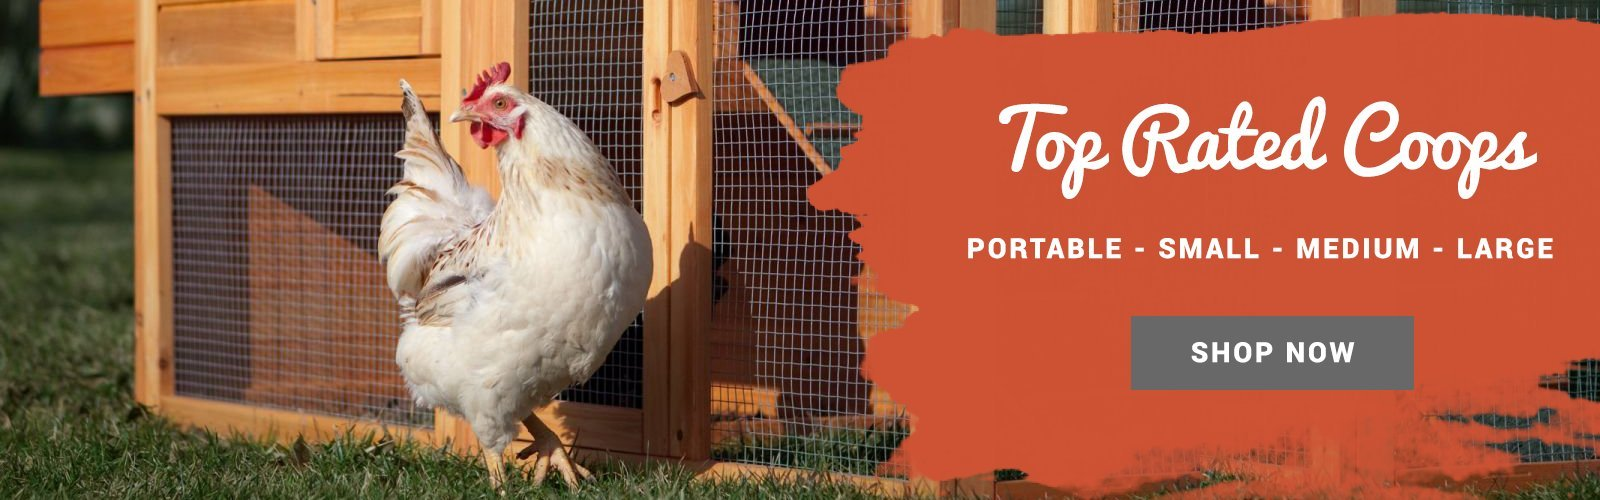 Top Rated Backyard Chicken Coops